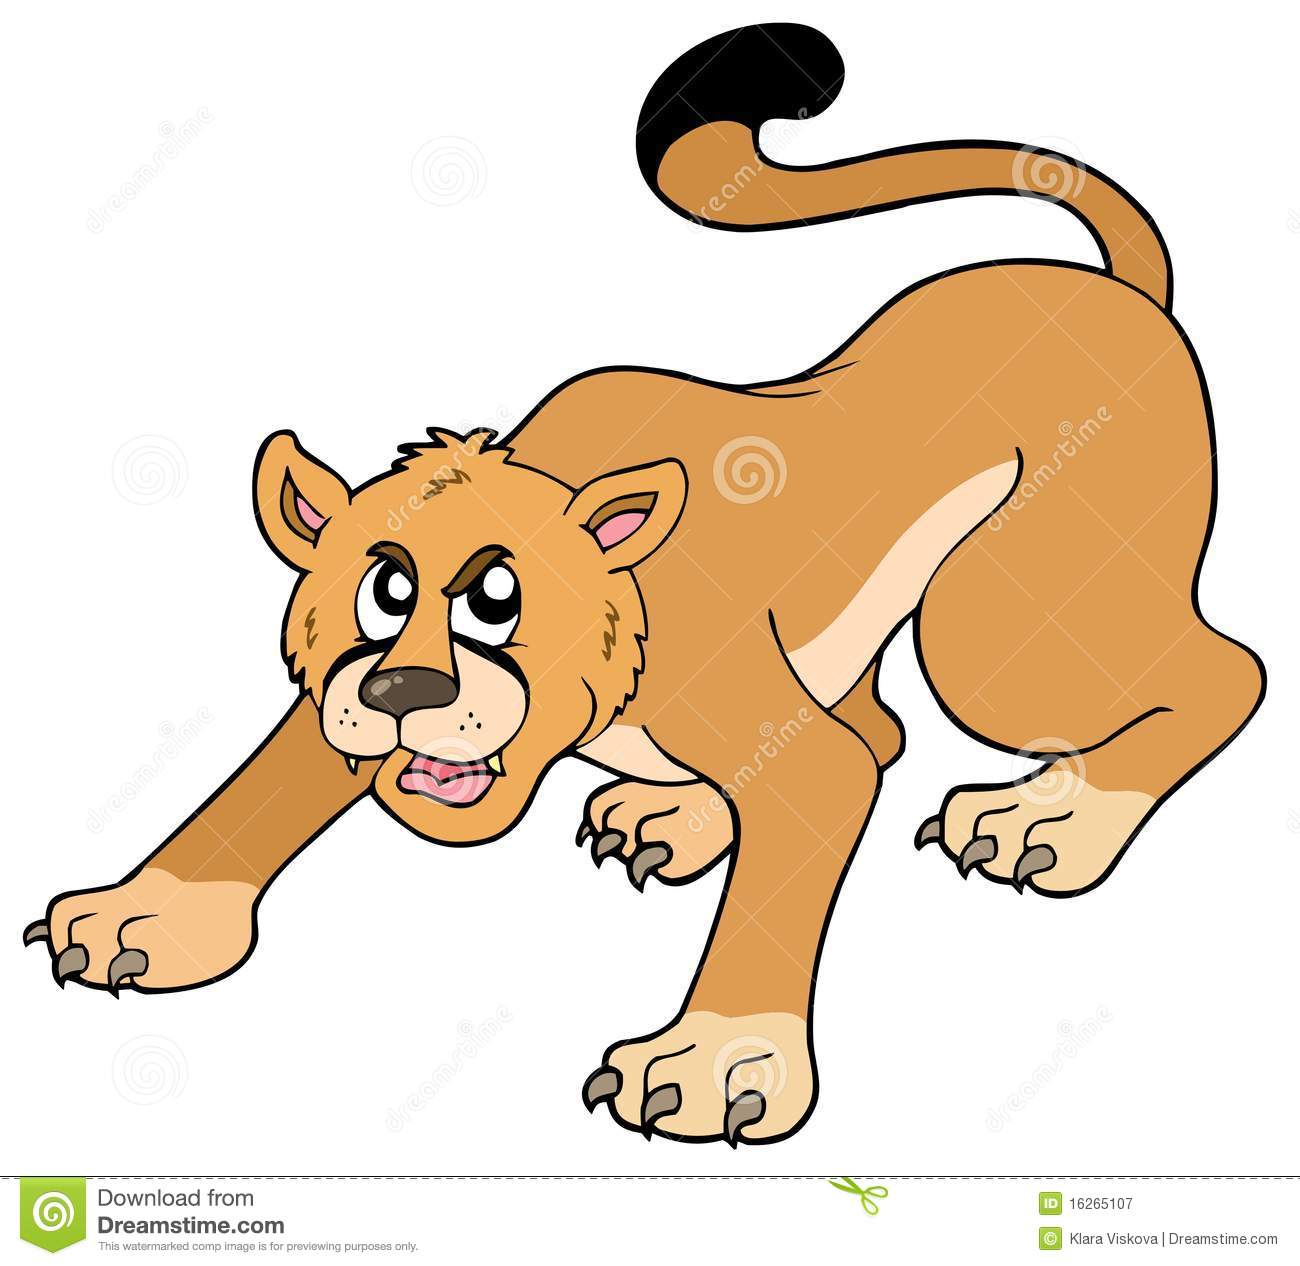 990 Cougar free clipart.